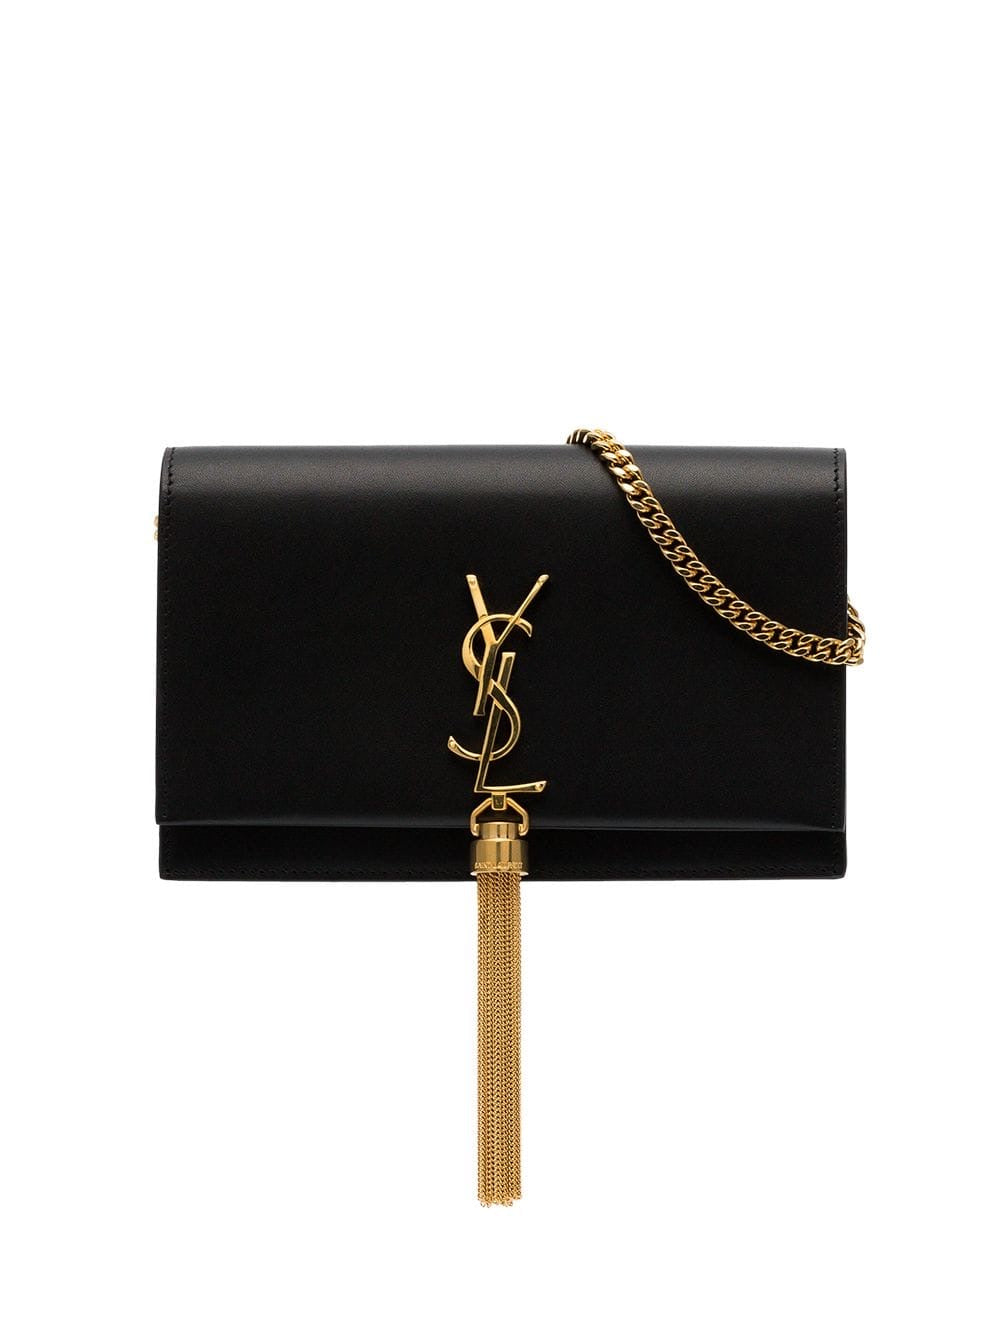 SAINT LAURENT CLASSIC SMALL KATE TASSEL CHAIN BAG IN BLACK LEATHER (RENTAL)